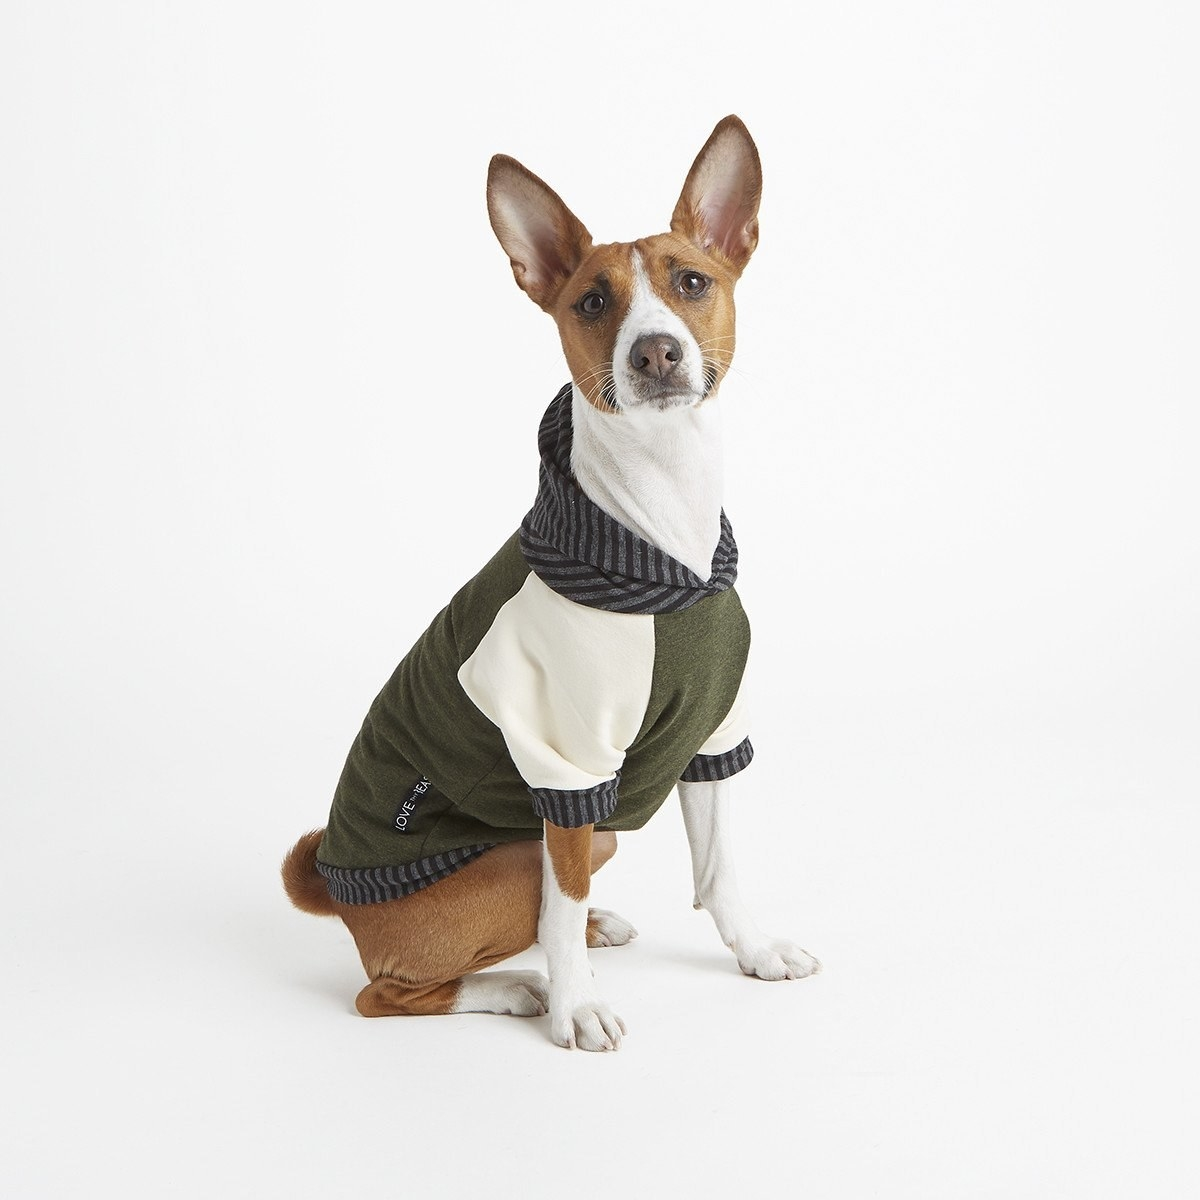 dog wearing a fleece hoodie with short sleeves. It is green and beige with a grey and black striped hood.